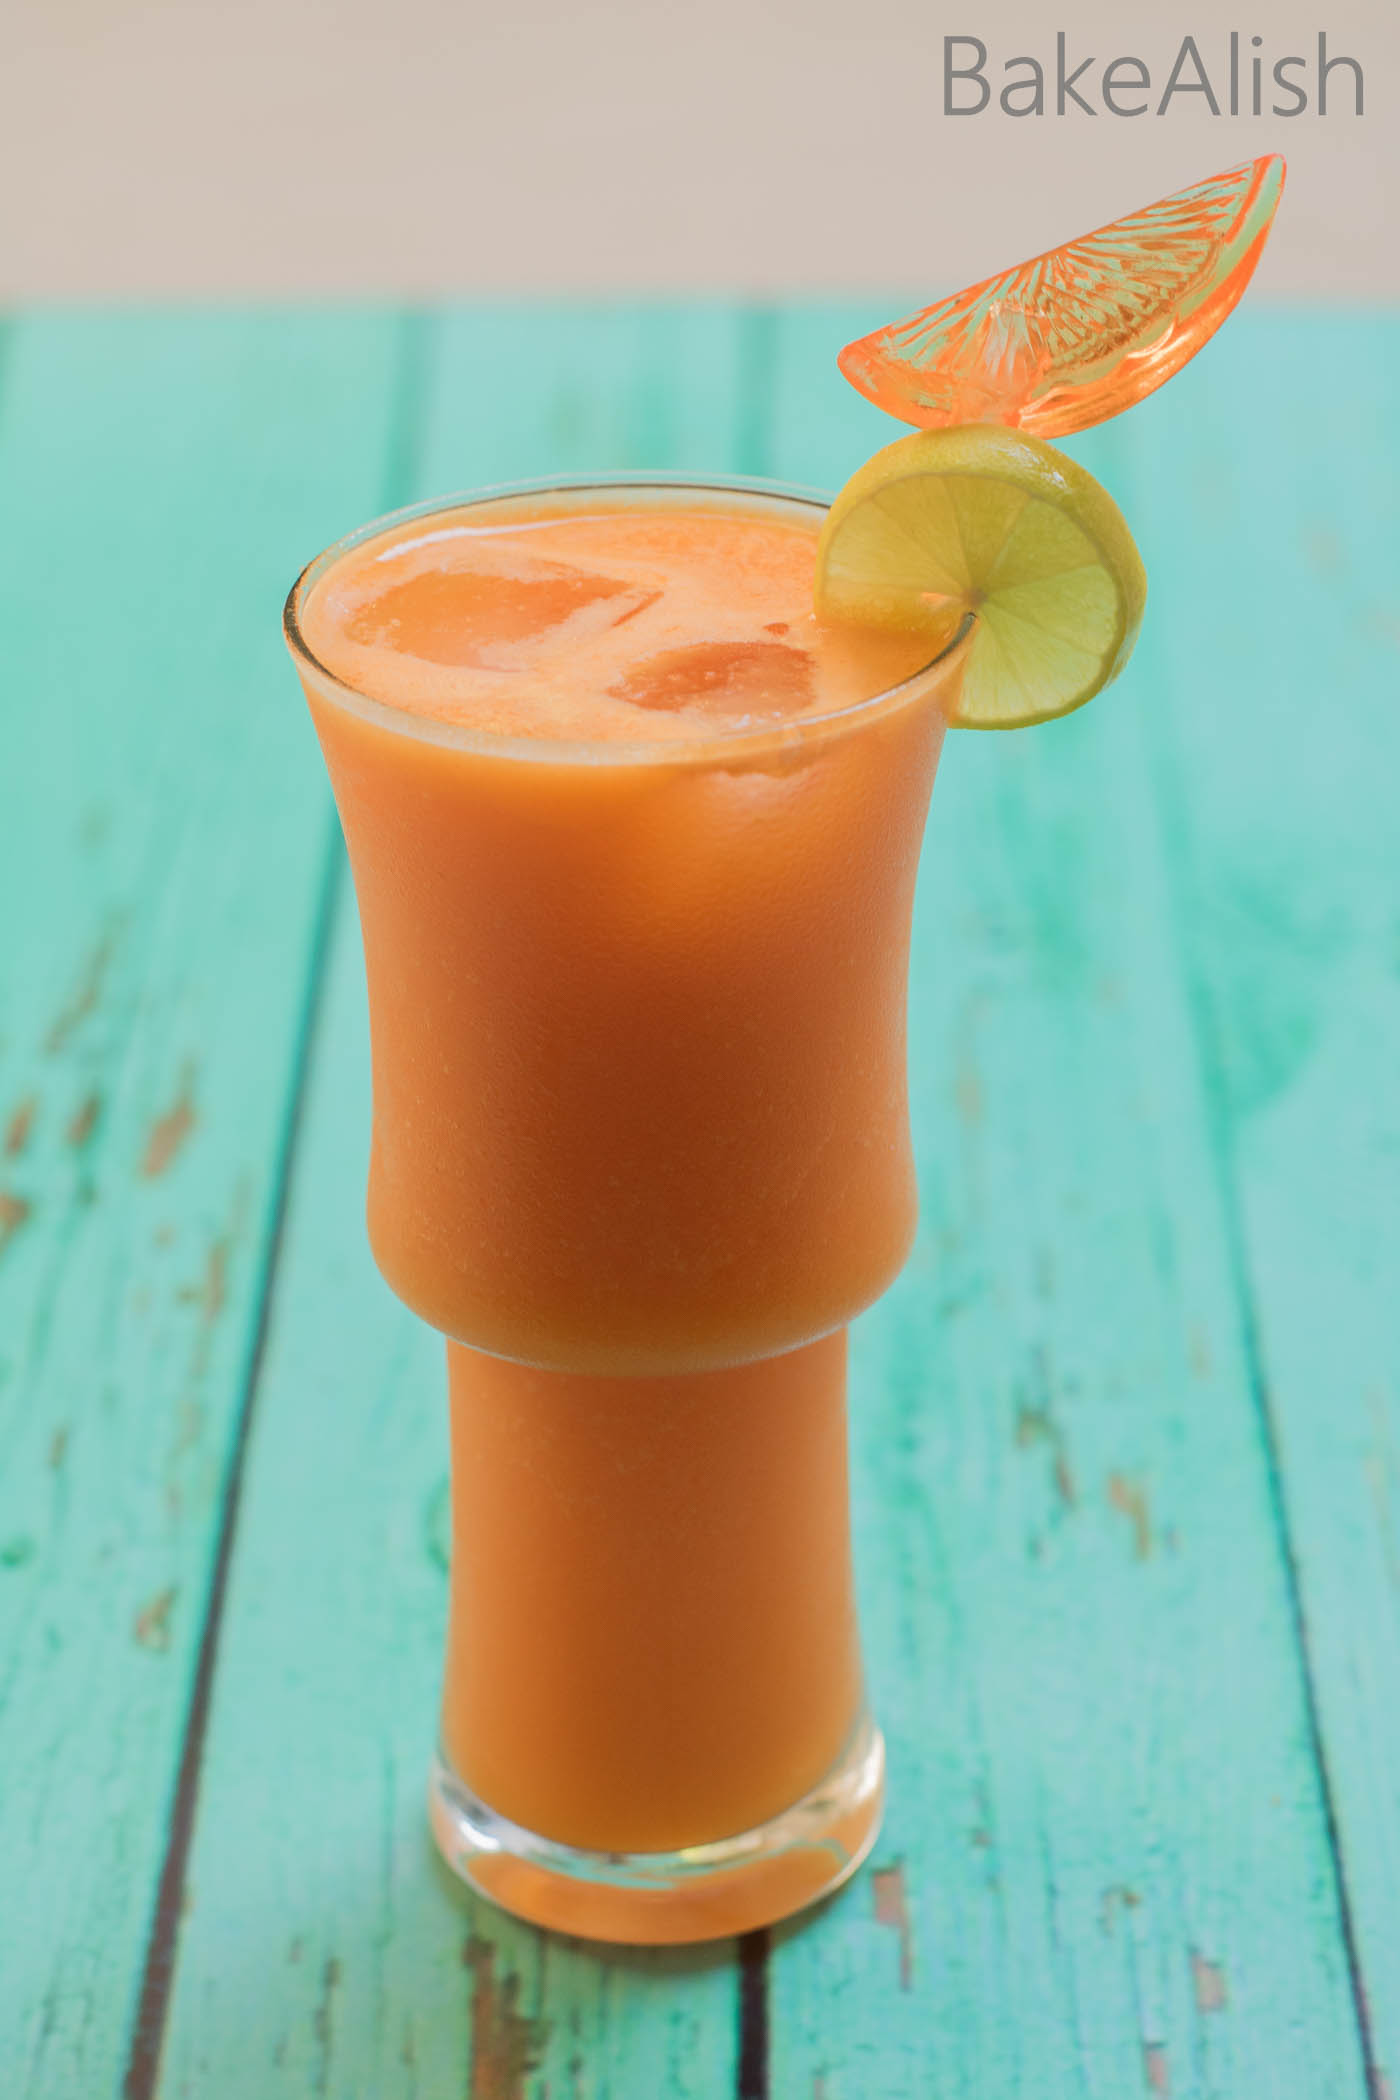 This Healthy juice helps to achieve glowing skin and is a healthy option during the summers